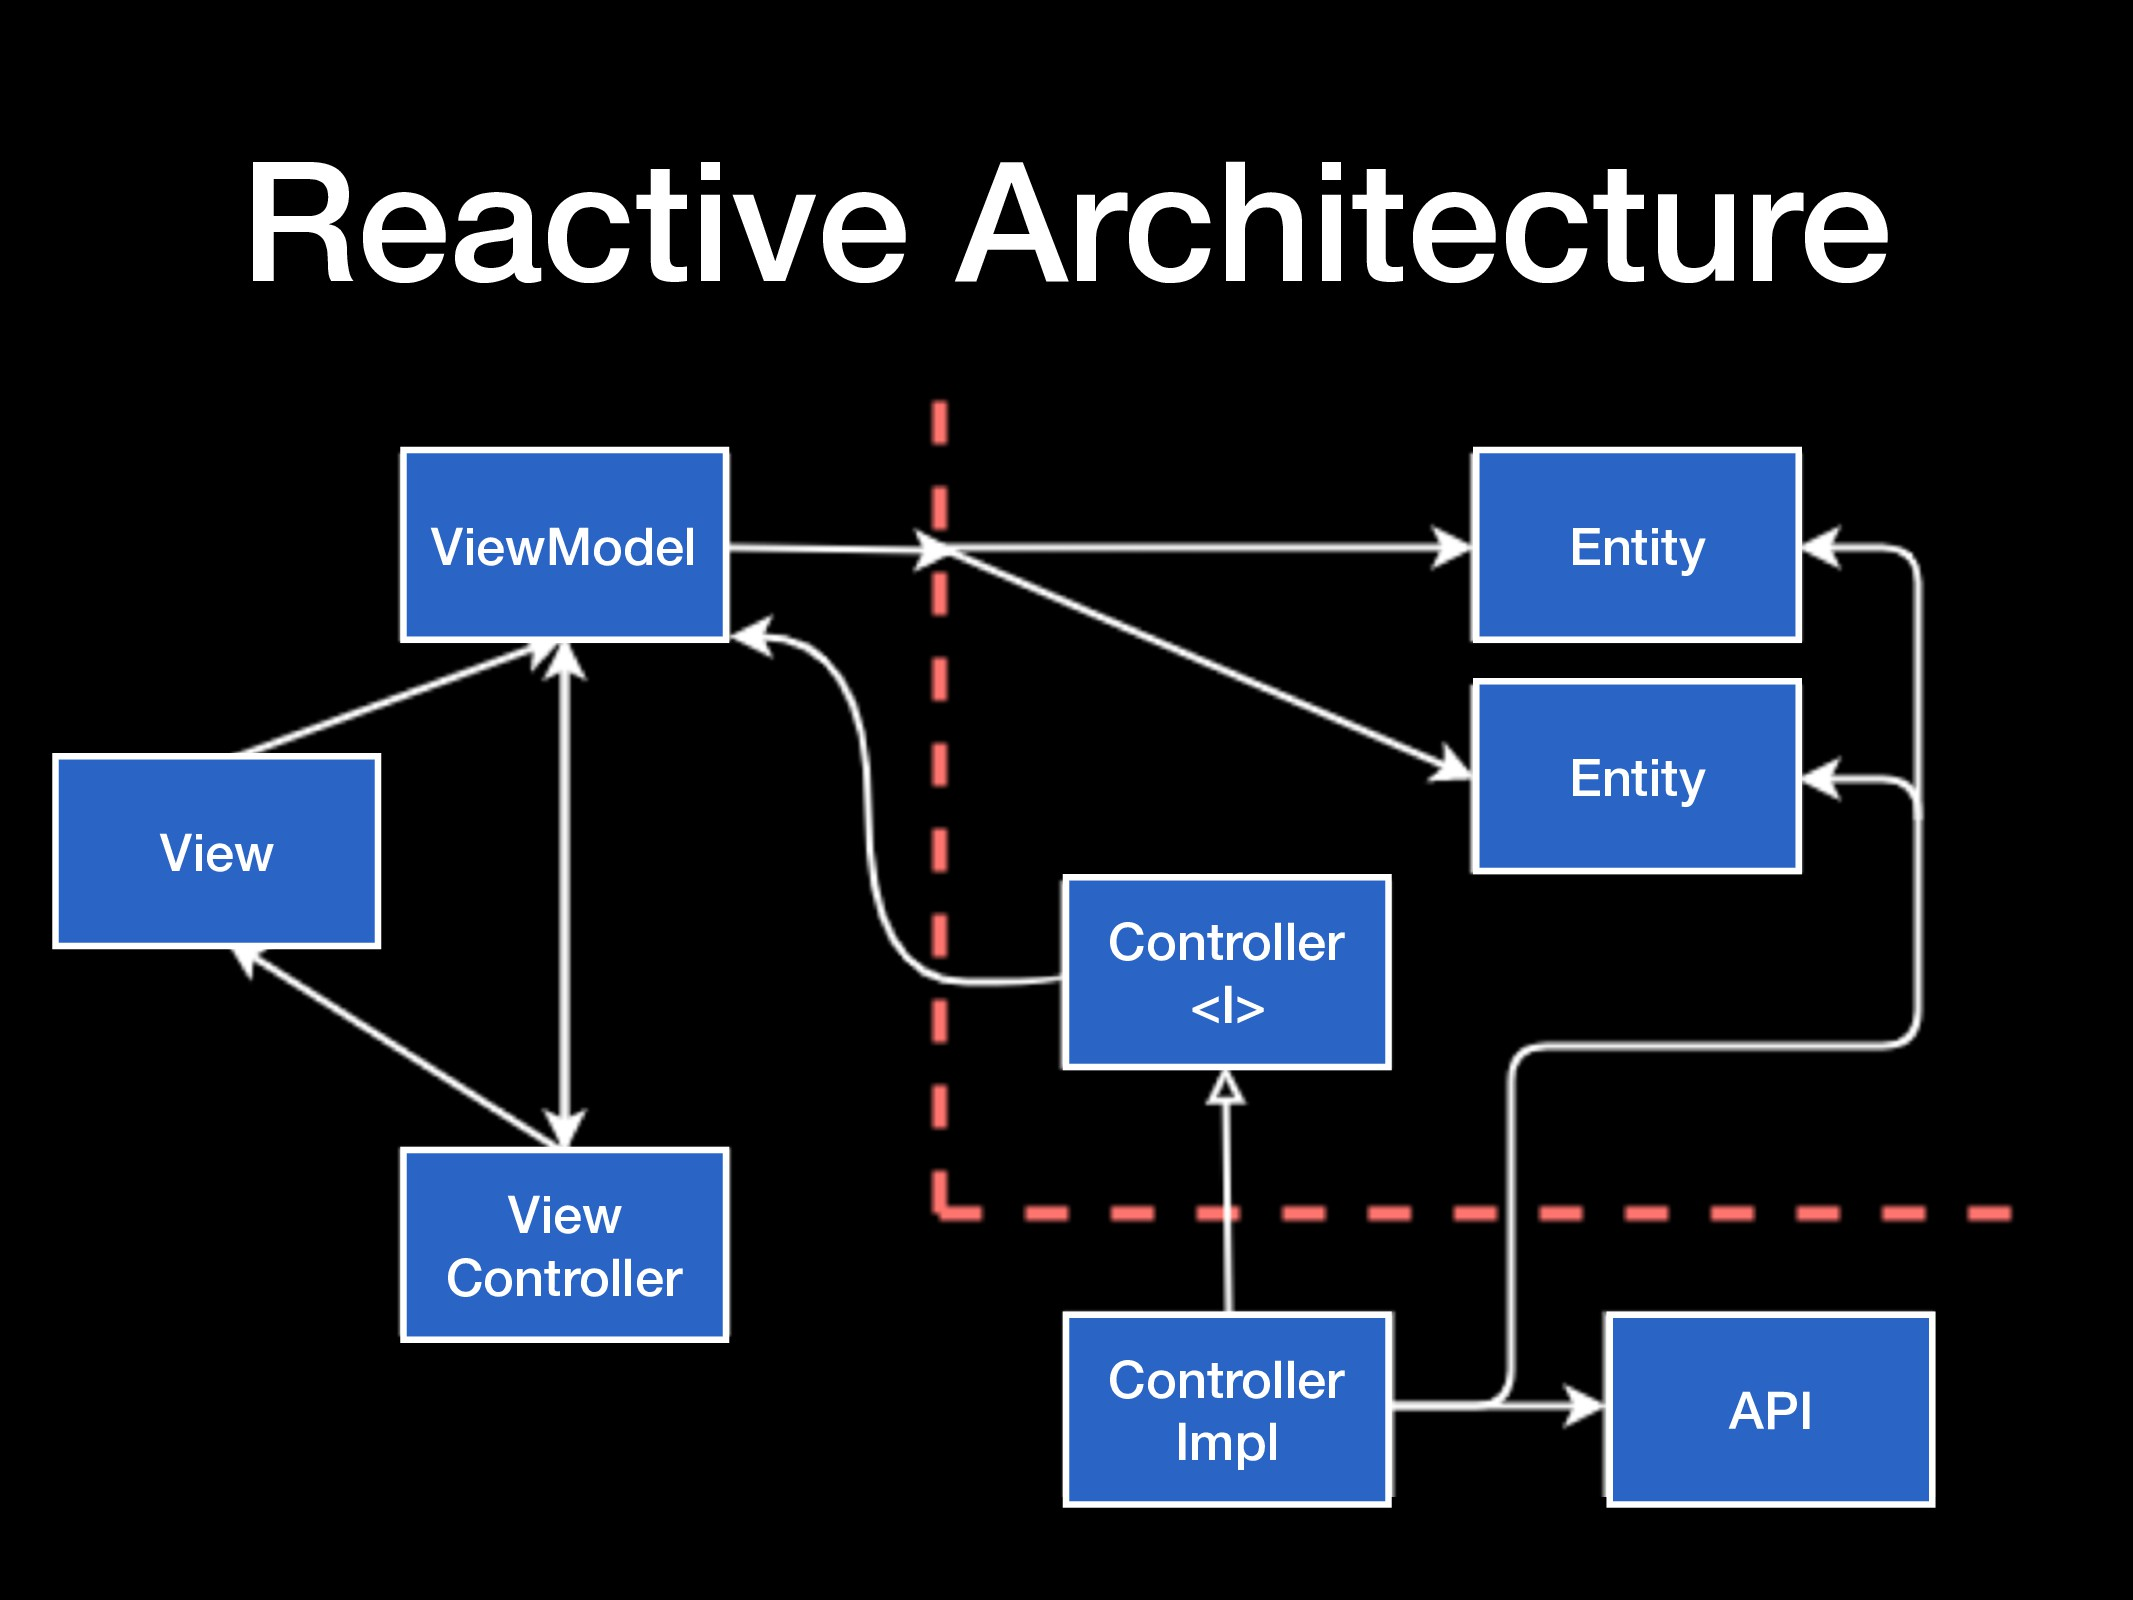 Reactive Architecture ViewModel View View Contr...